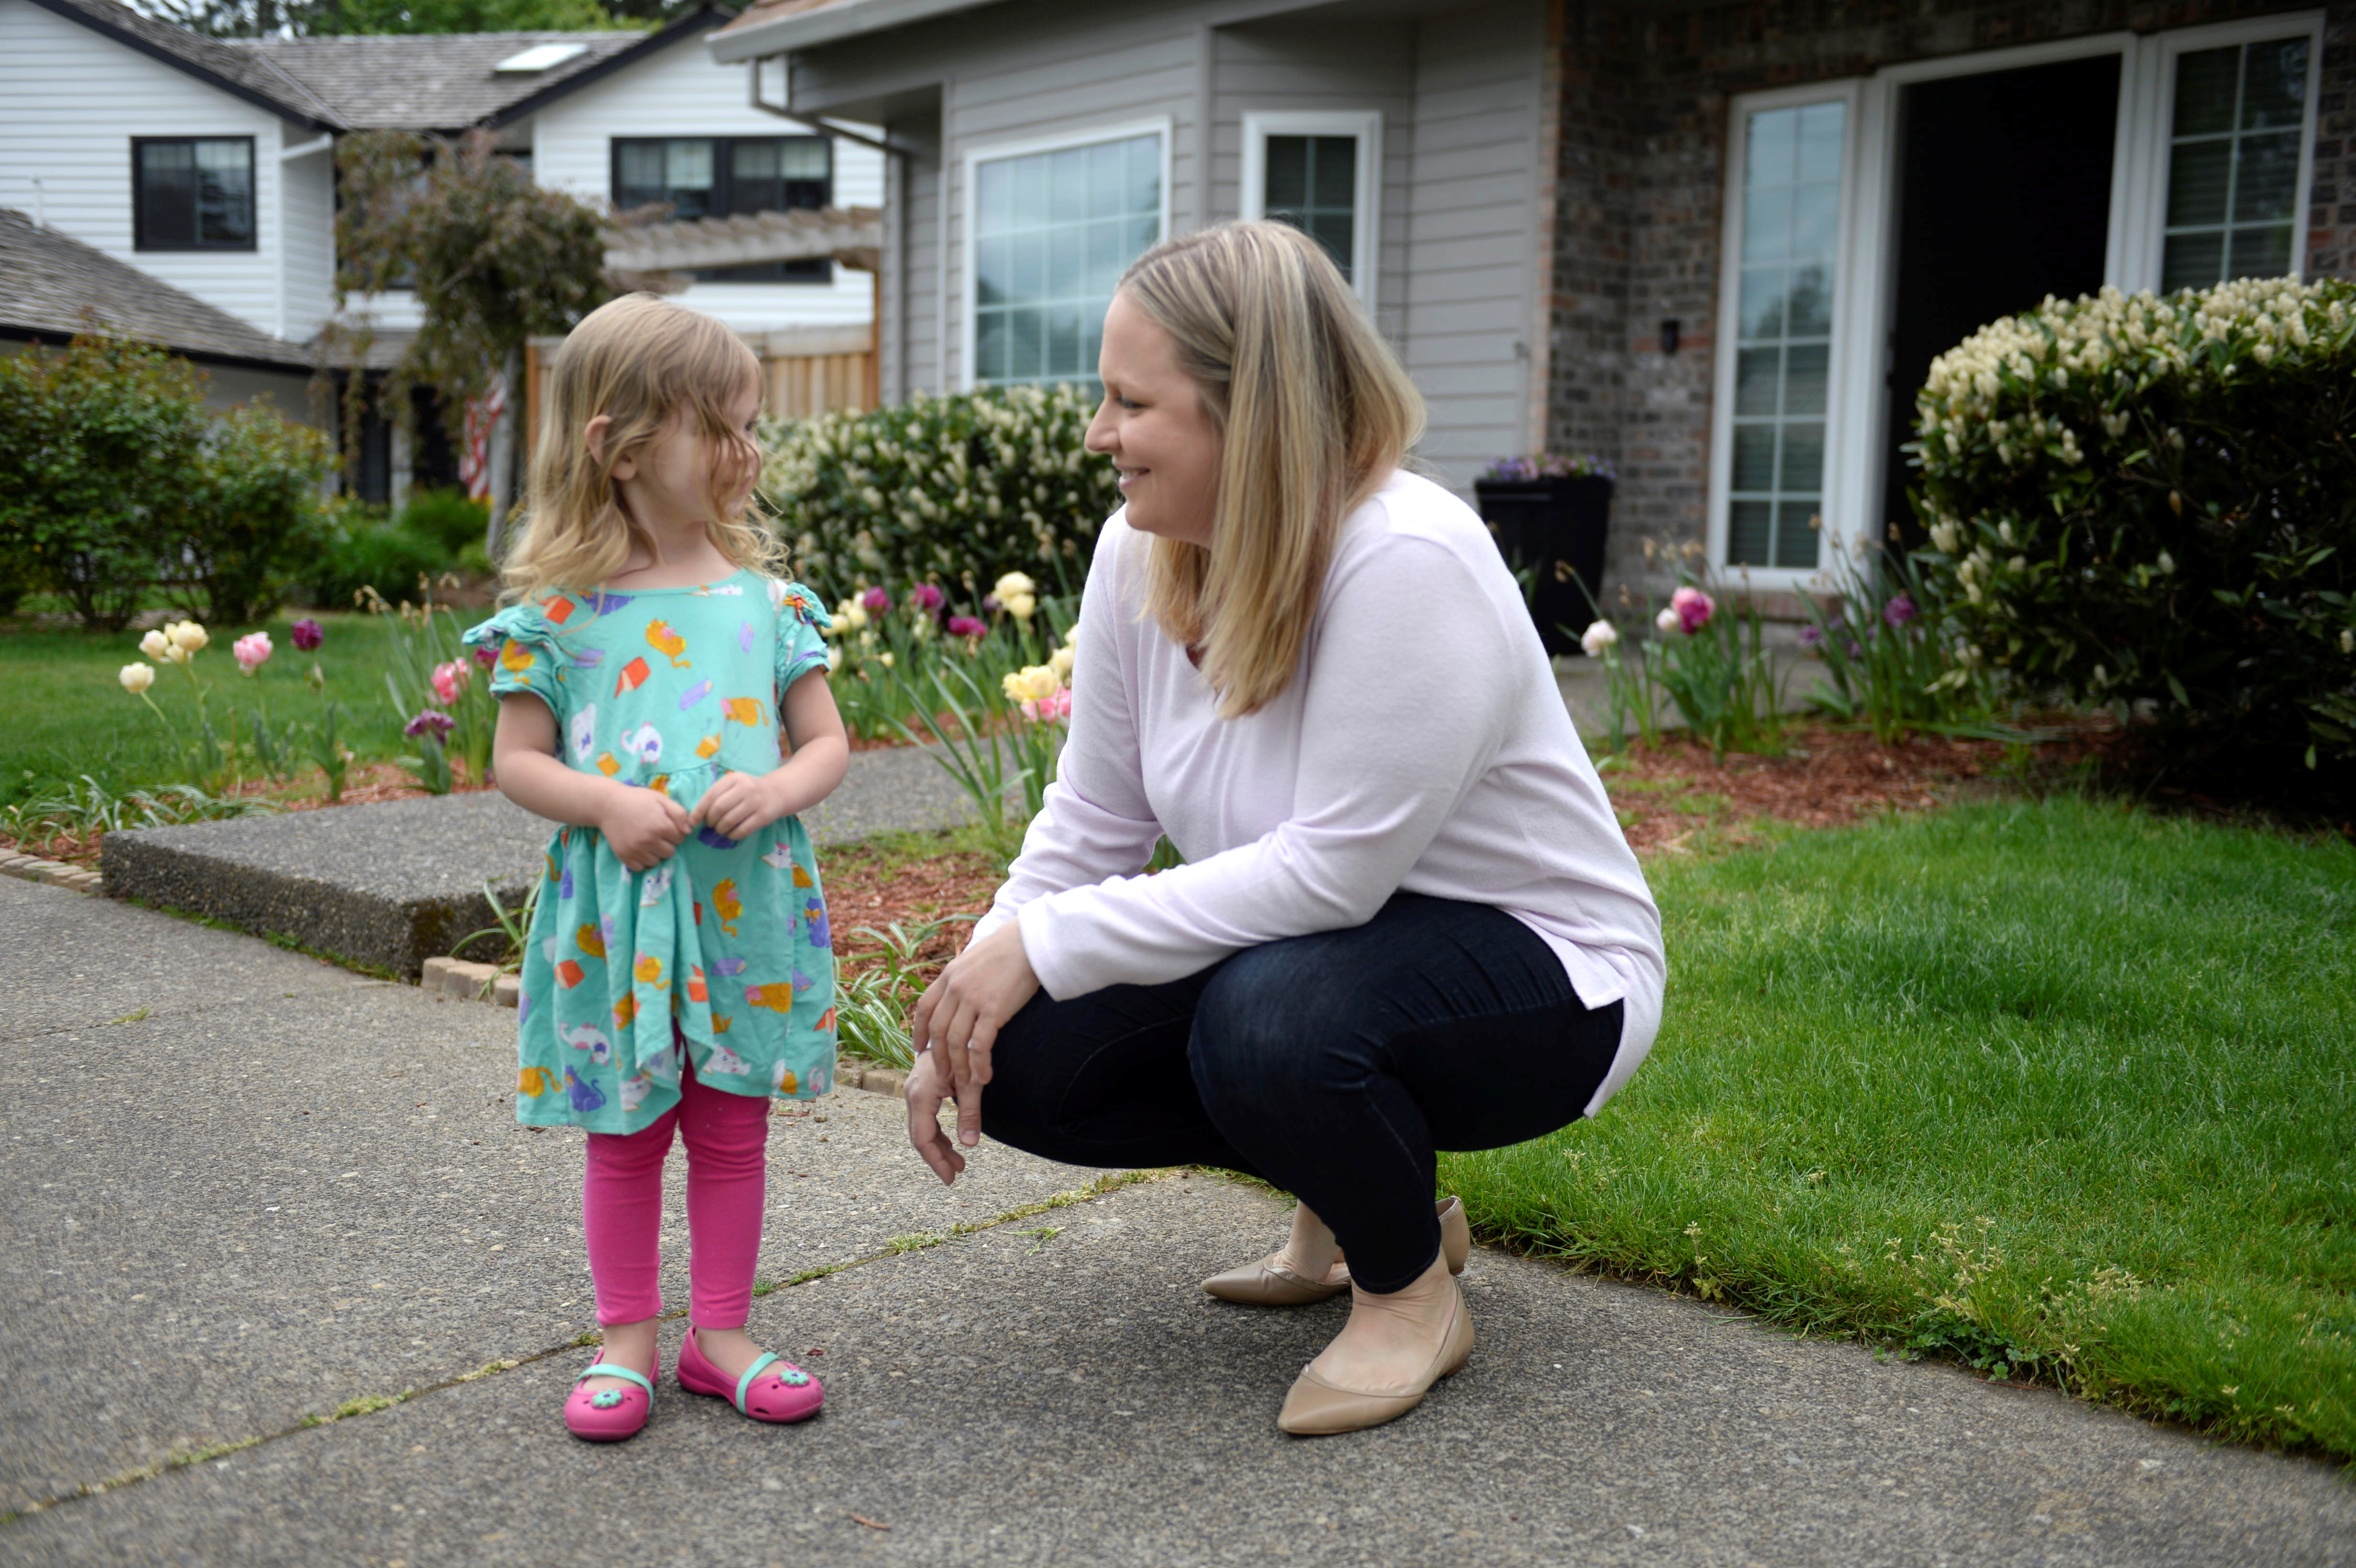 Mother of two, Wendy Niculescu, poses for a photo with her daughter Eleanor in Tualatin, Oregon, U.S., May 1, 2021. REUTERS/Amanda Lucier